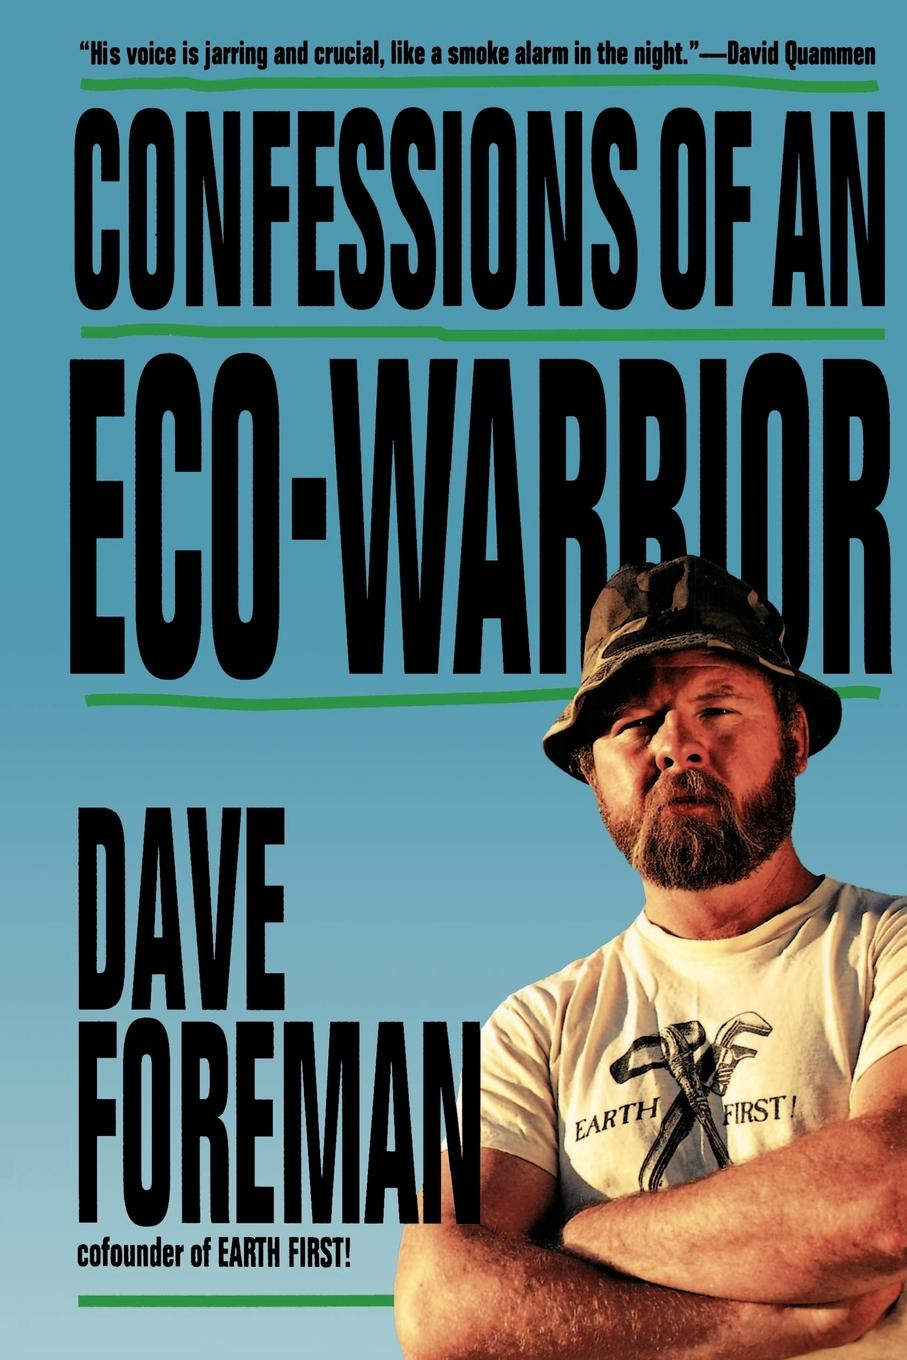 Dave Foreman Confessions of an Eco-Warrior confessions of an ex doofus itchy footed mutha